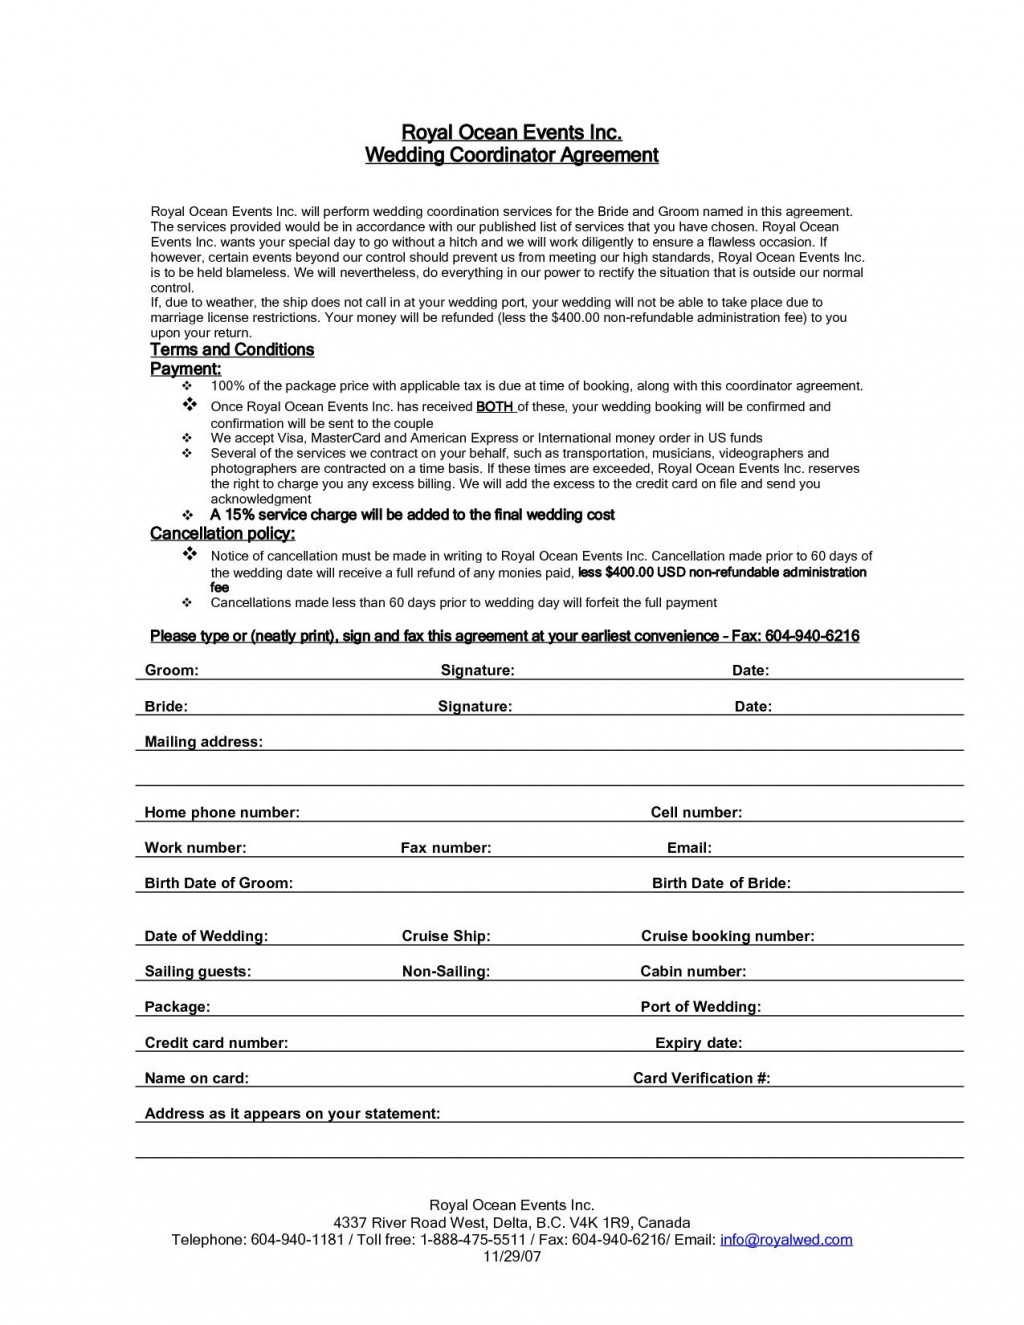 005 Impressive Wedding Planner Contract Template Picture  Word Planning Coordinator FreeLarge